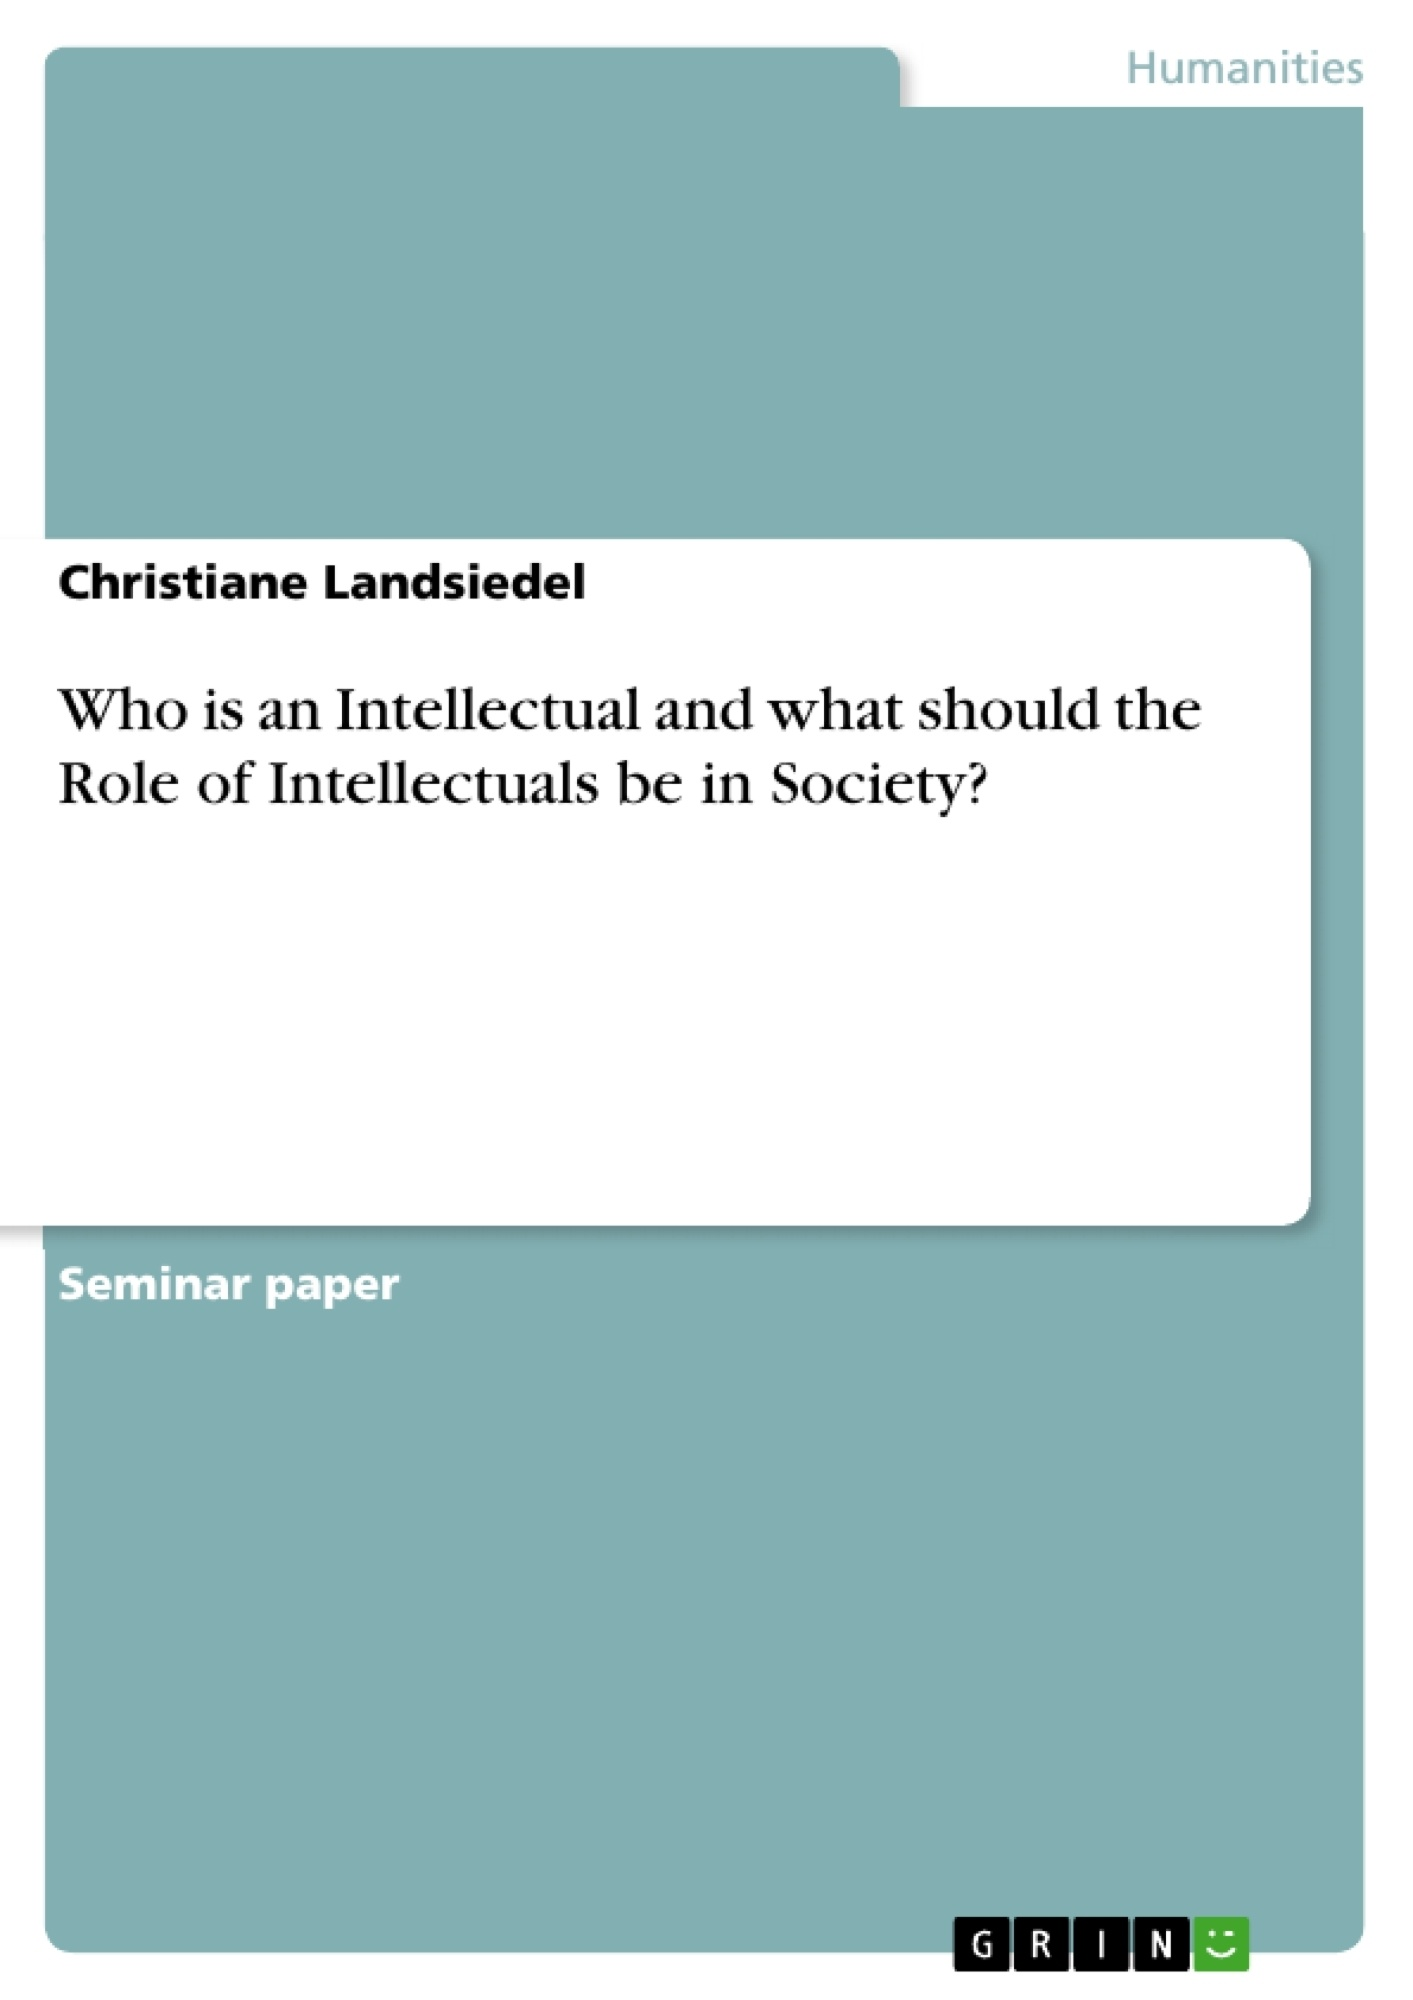 Title: Who is an Intellectual and what should the Role of Intellectuals be in Society?